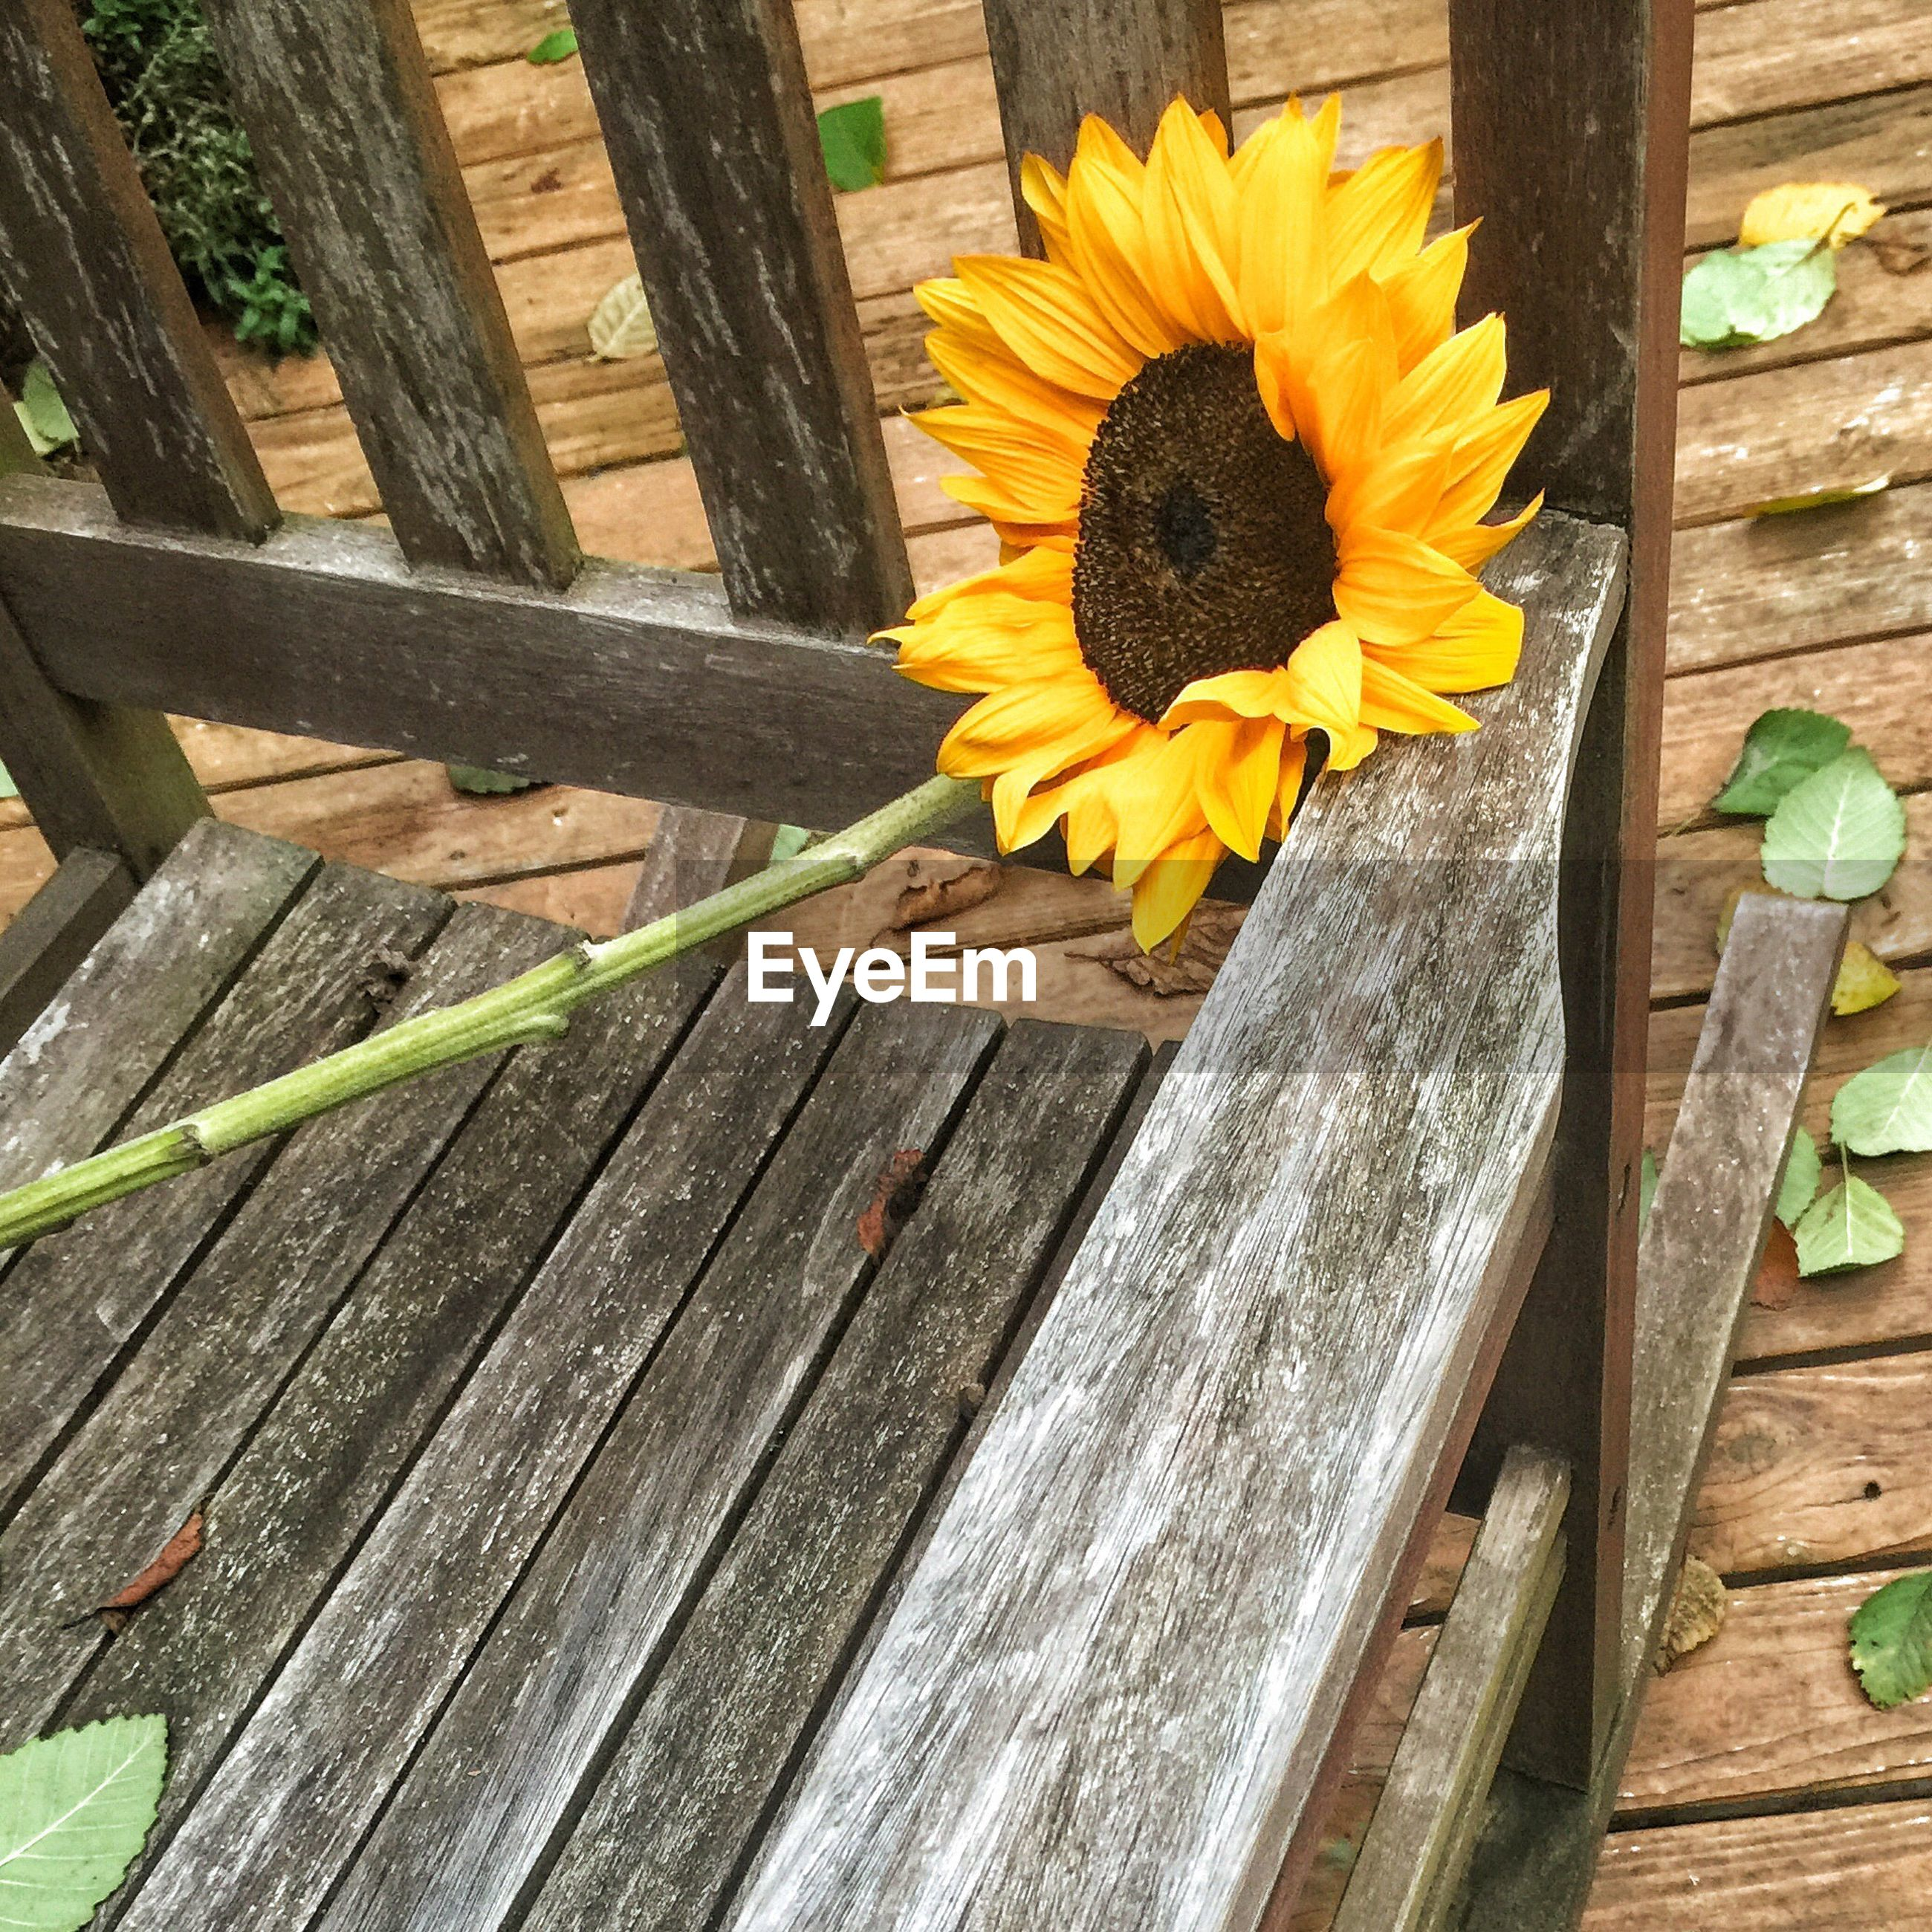 CLOSE-UP OF YELLOW FLOWER GROWING ON WOOD